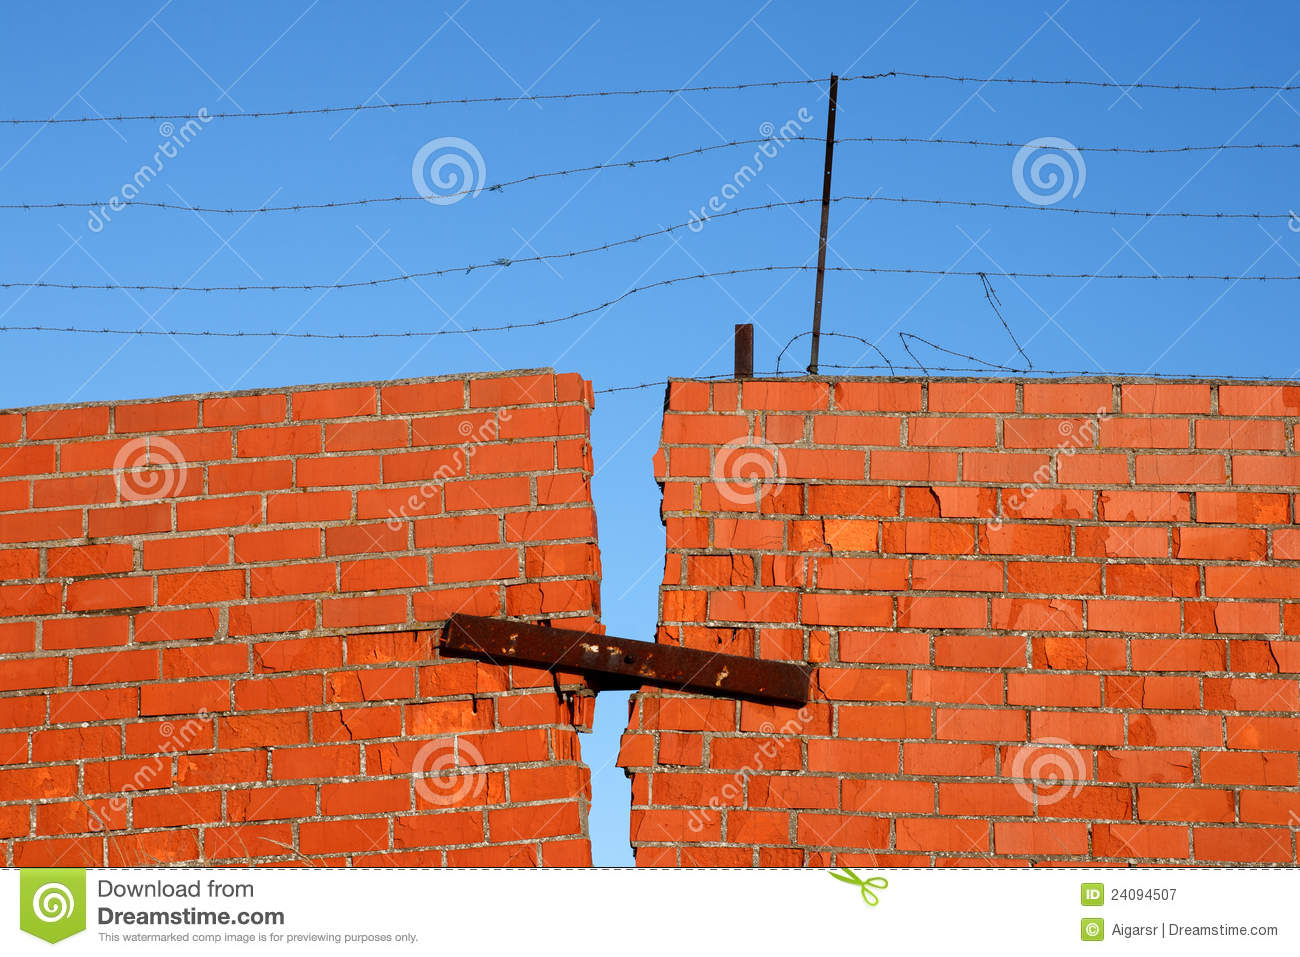 how to find a broken wire in a wall